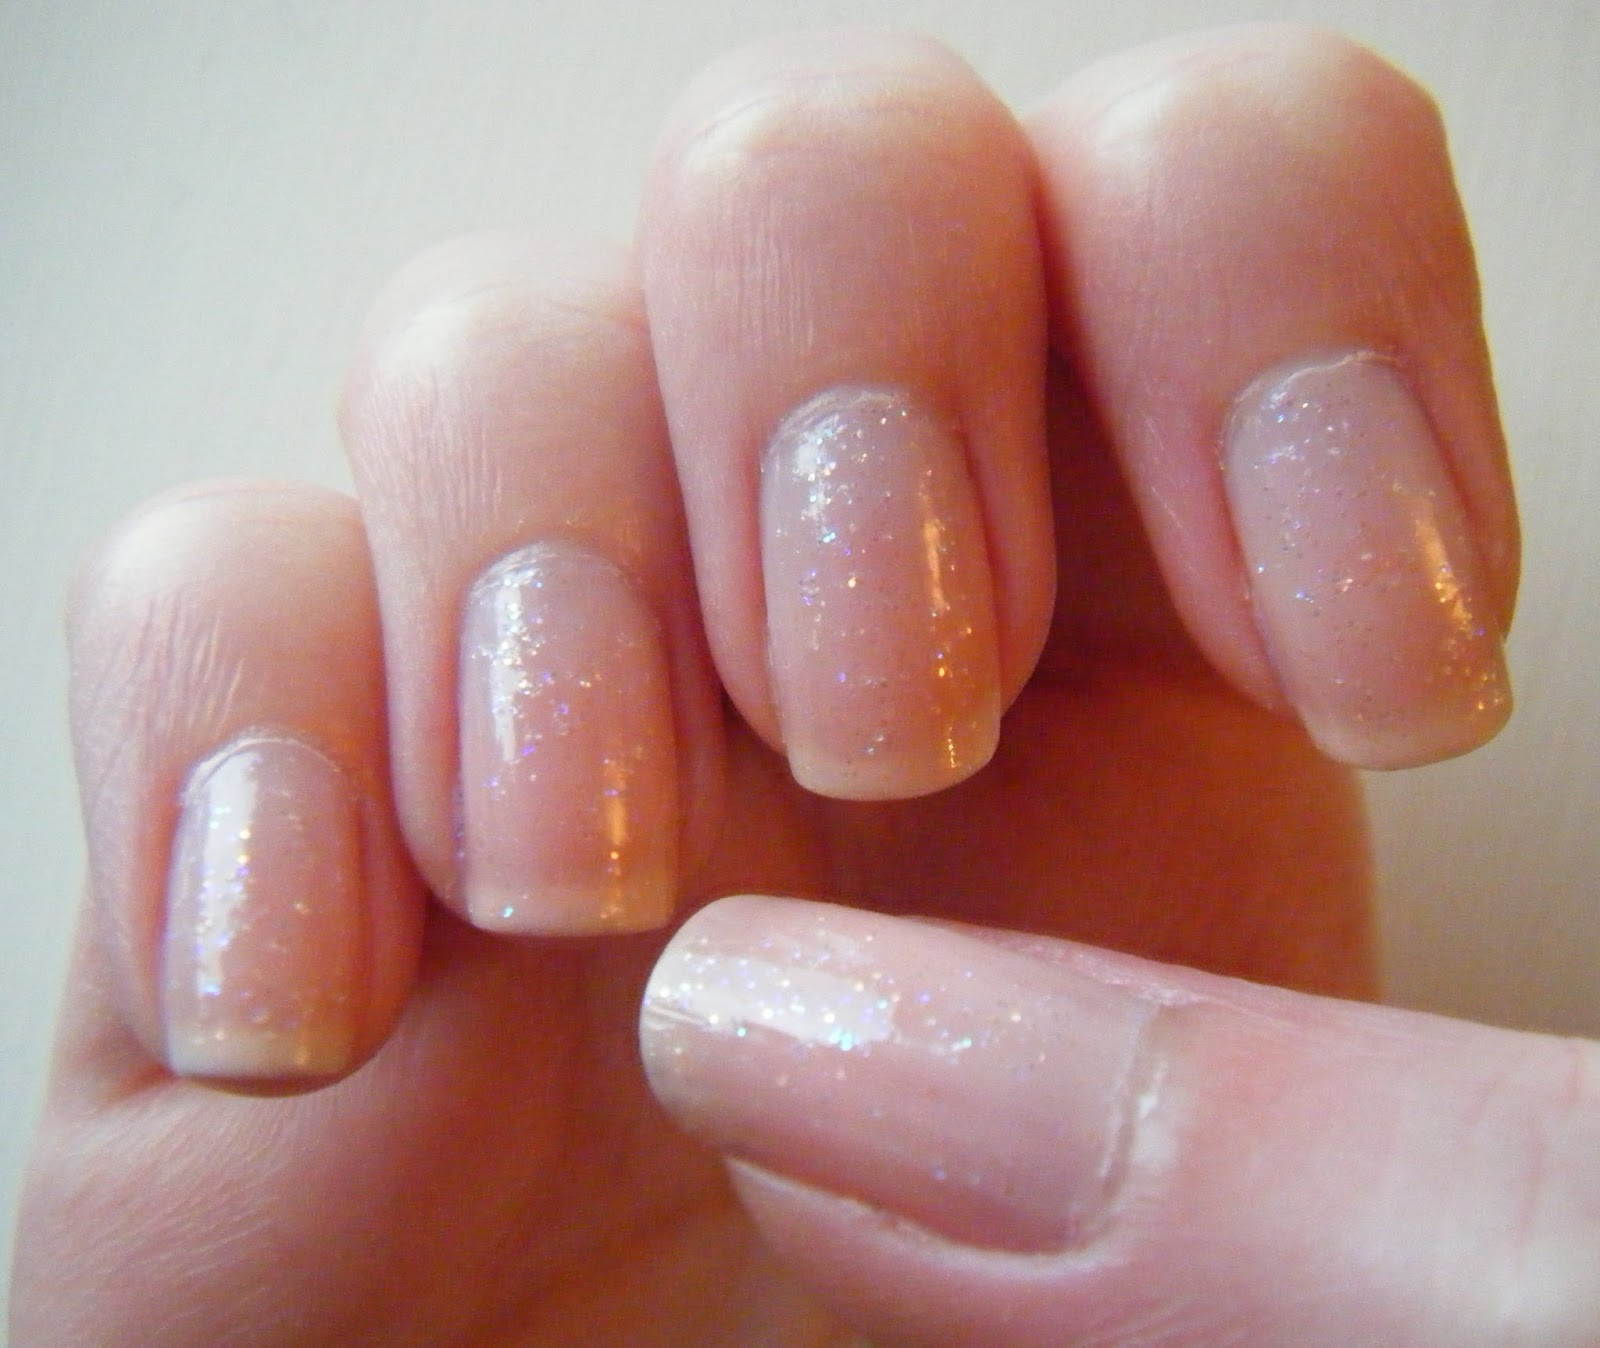 caz 'n' polish | sparkly nude nails